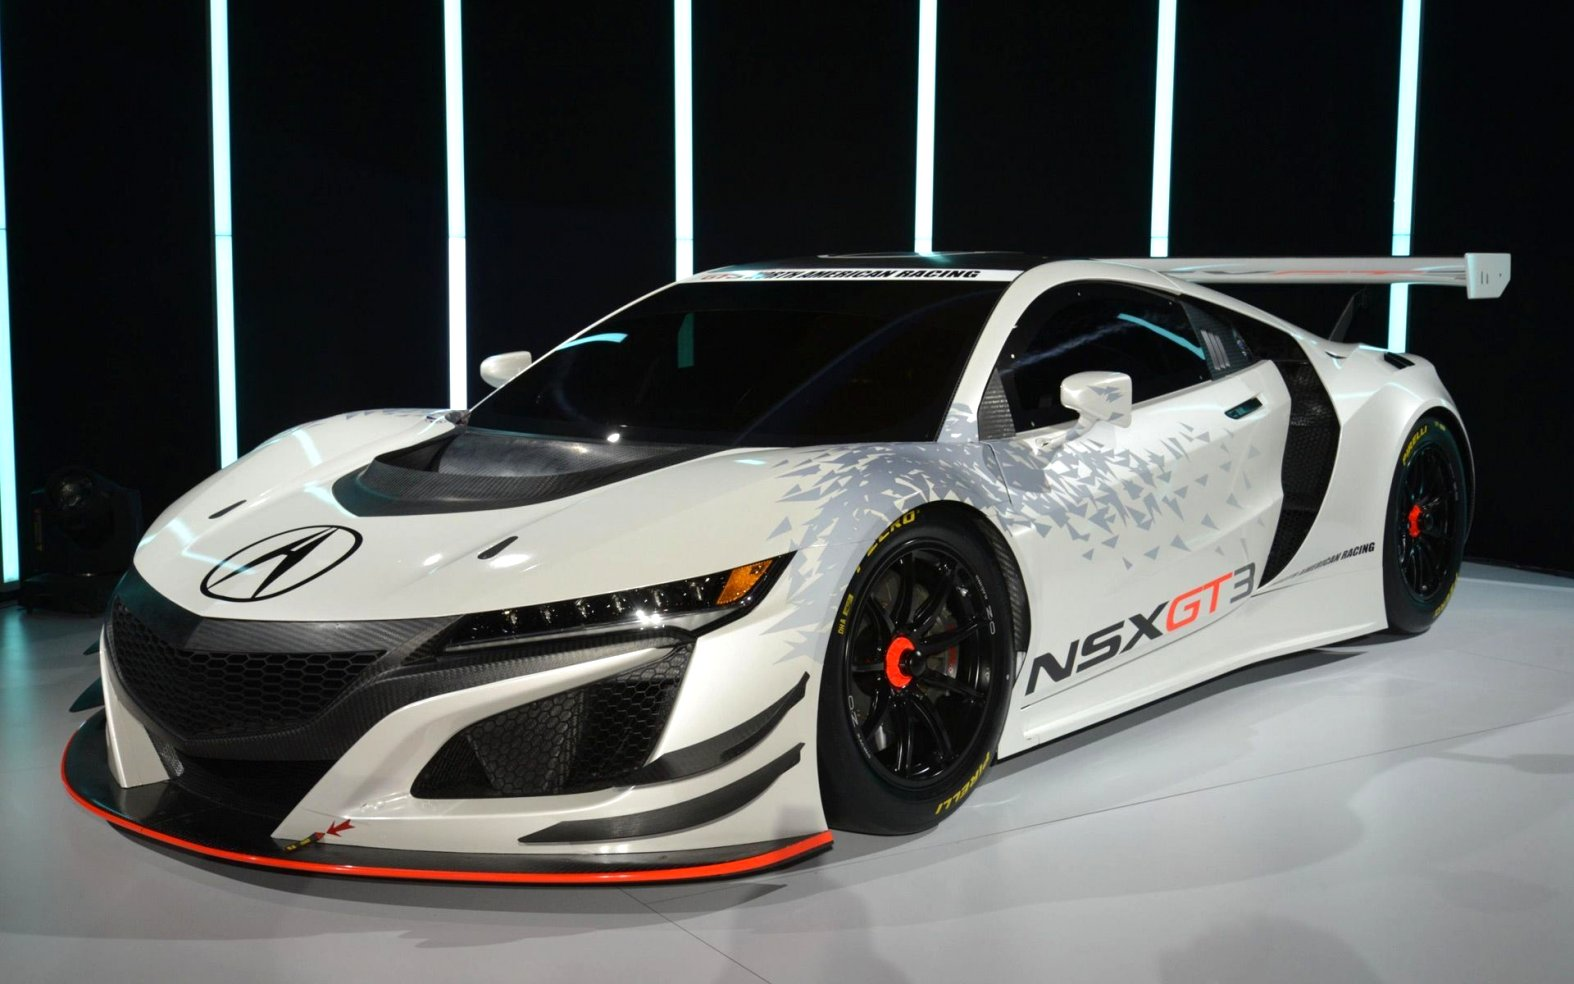 2020 honda nsx price Release Date and Concept